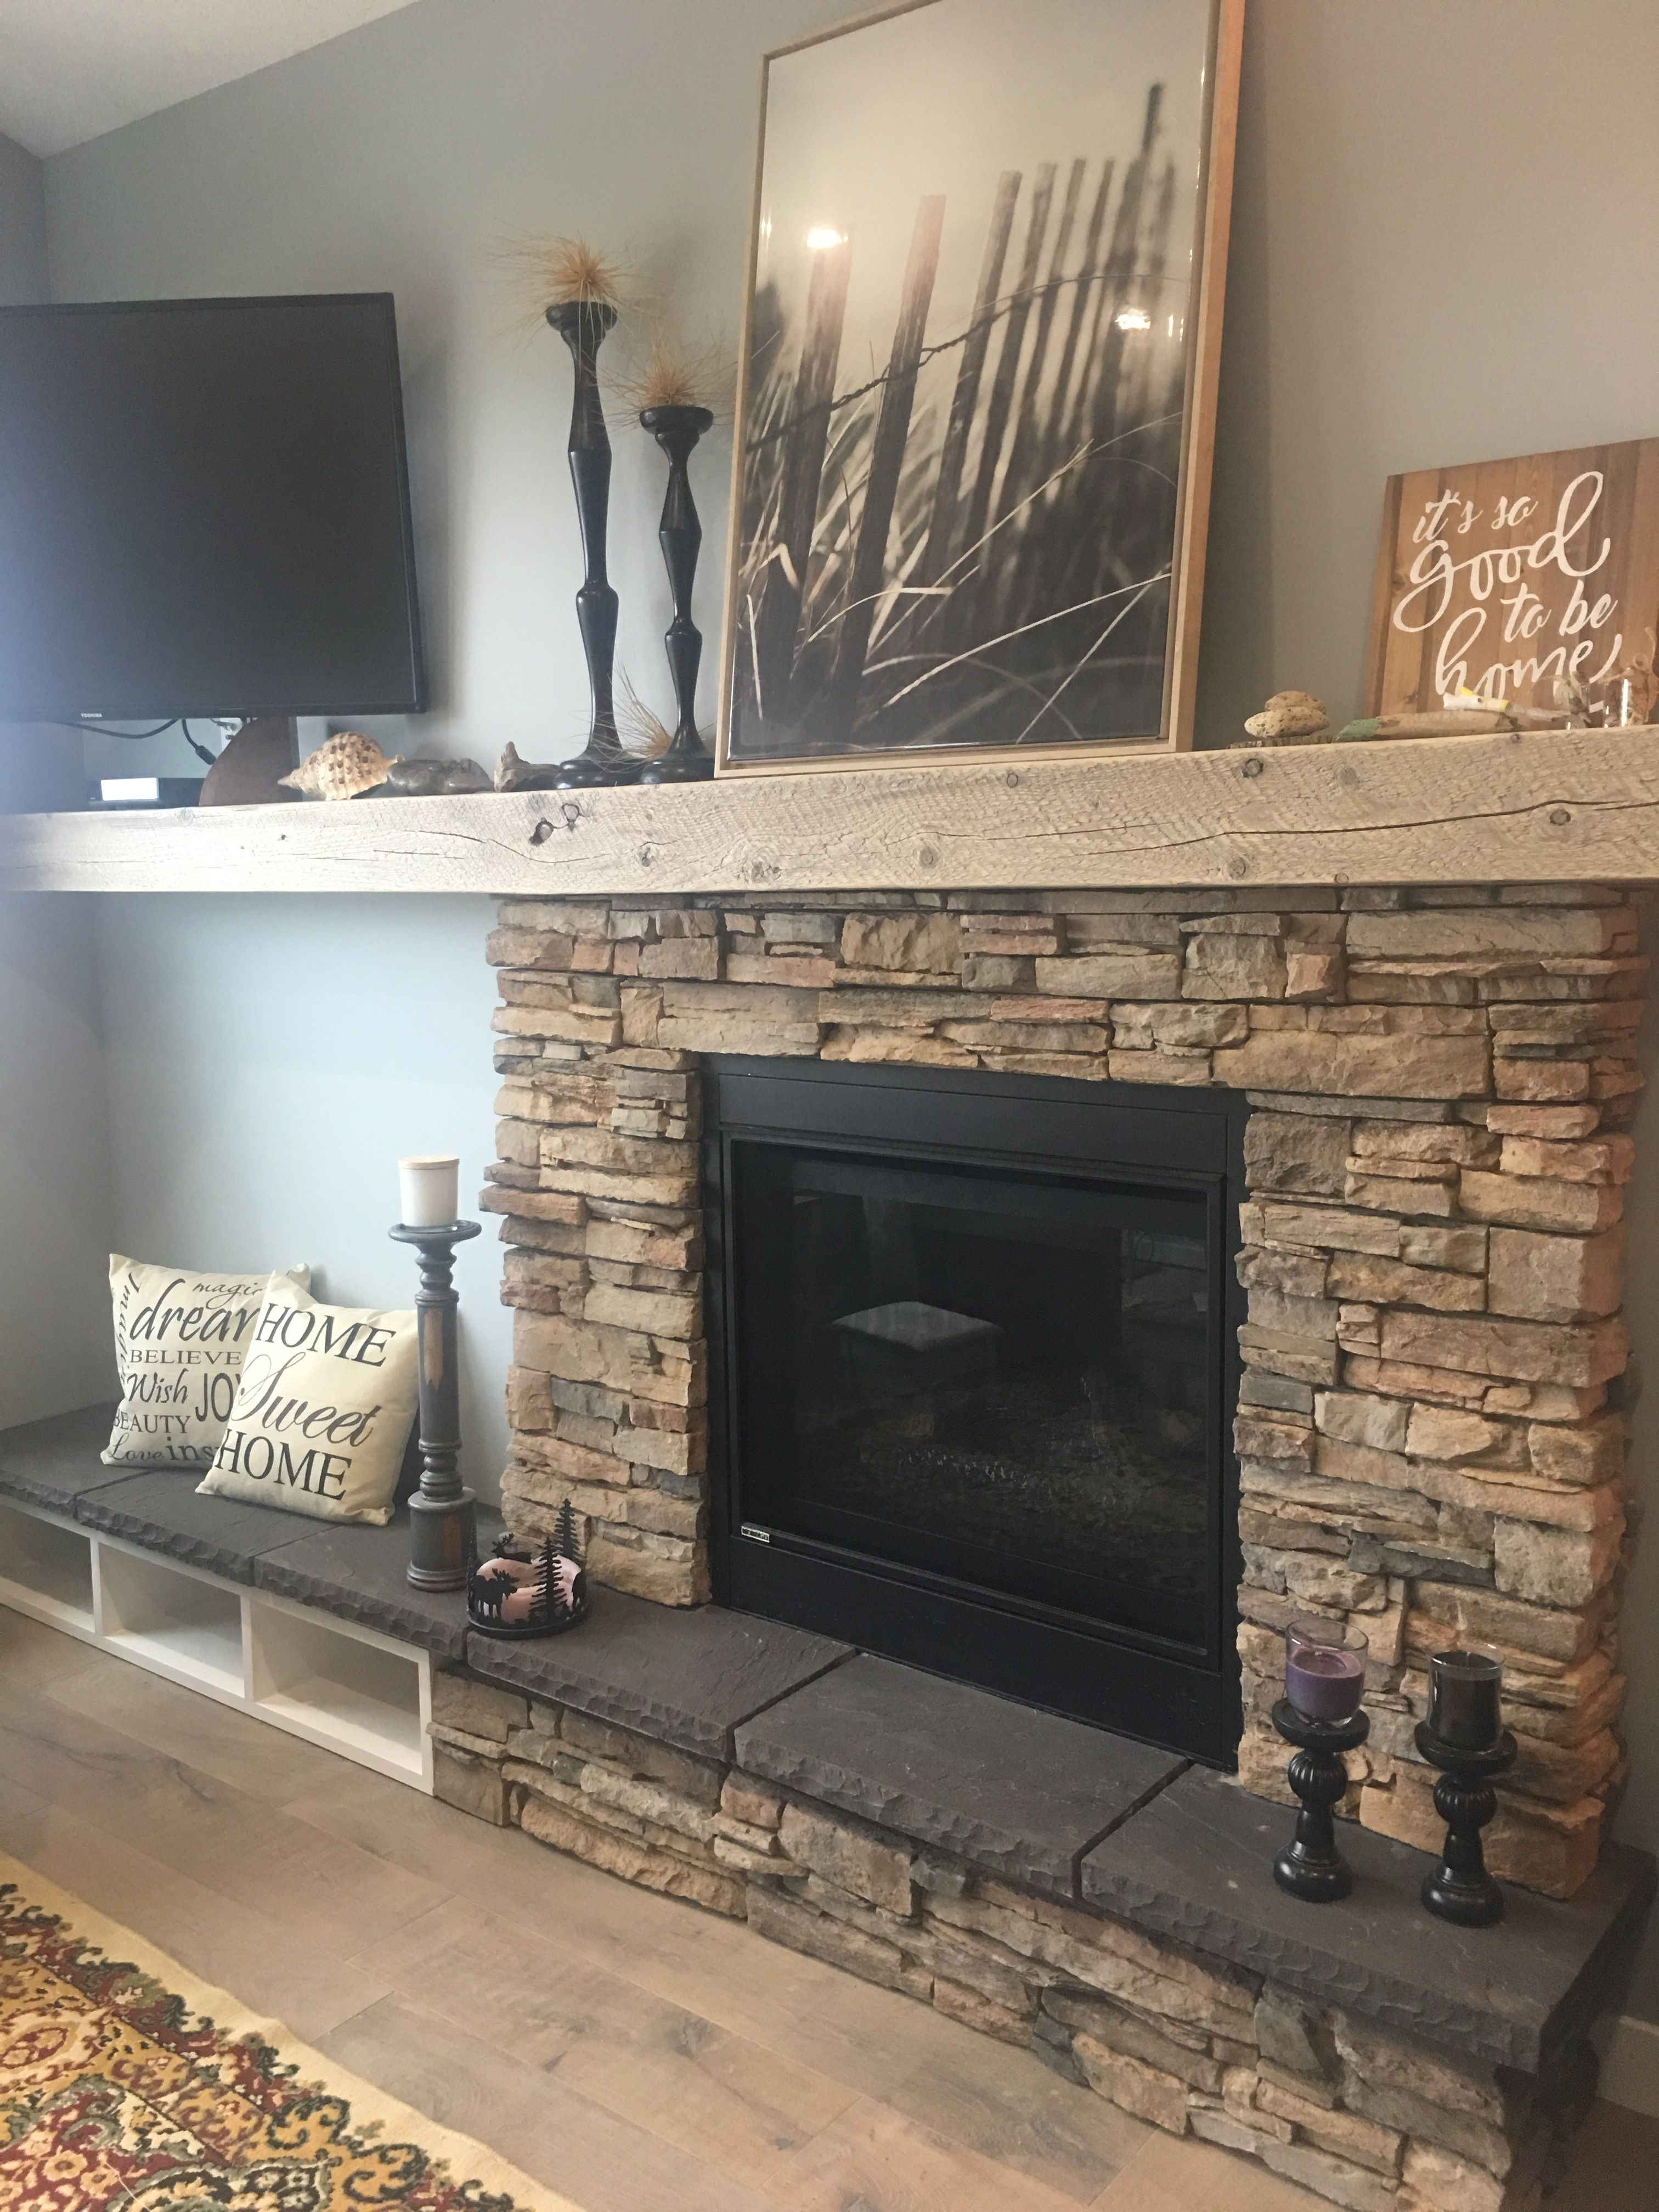 The Placement Of The Decorations Makes This Fireplace Asymmetrical